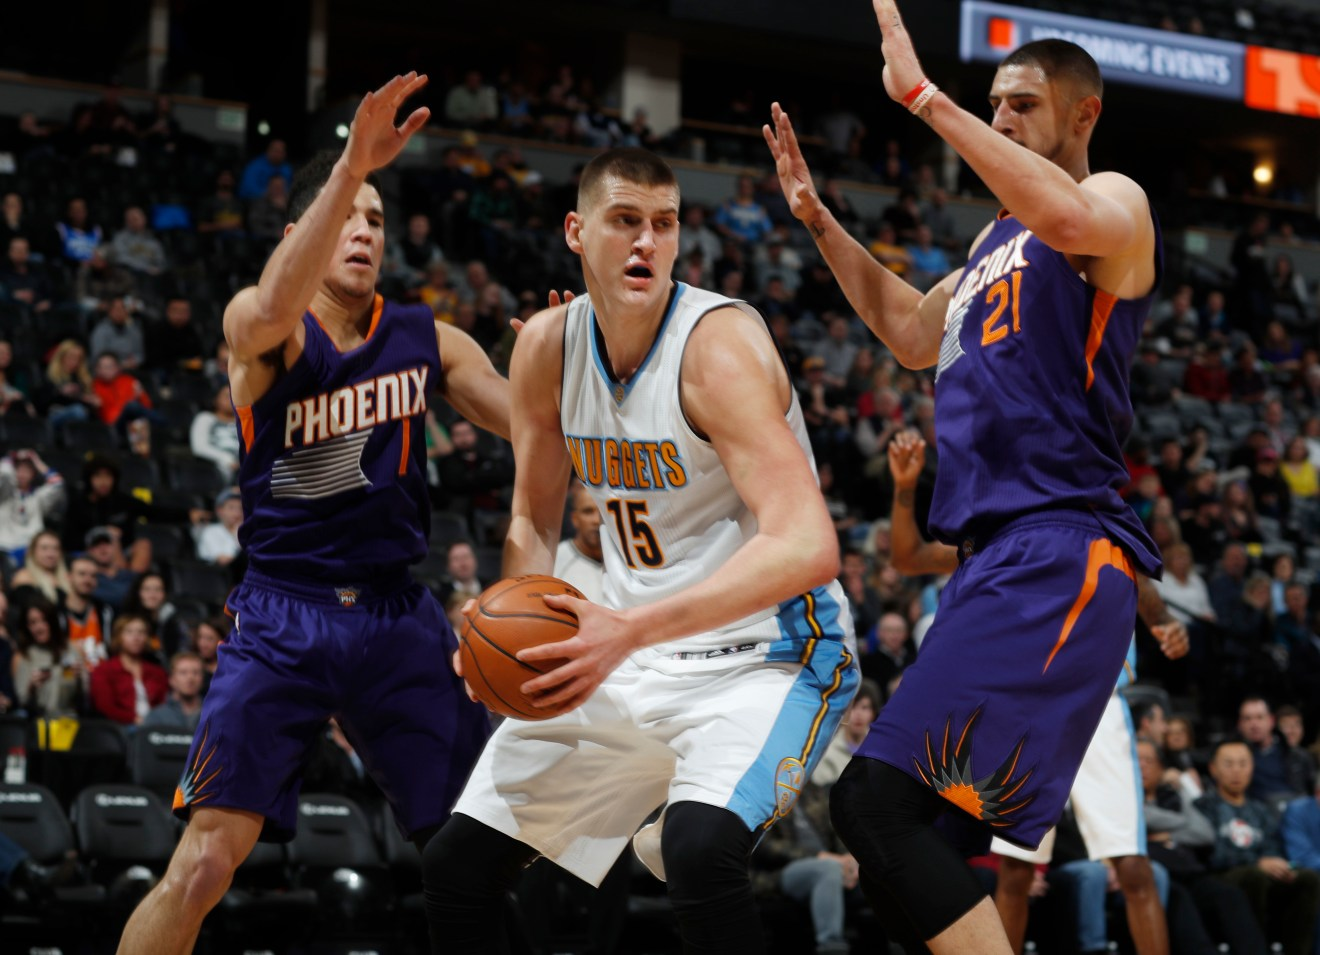 unique skill set of denver nuggets nikola jokic turning heads it will be hard for nikola jokic to draw a more favorable comparison this season than the one presented by hall of fame point guard isaiah thomas two weeks